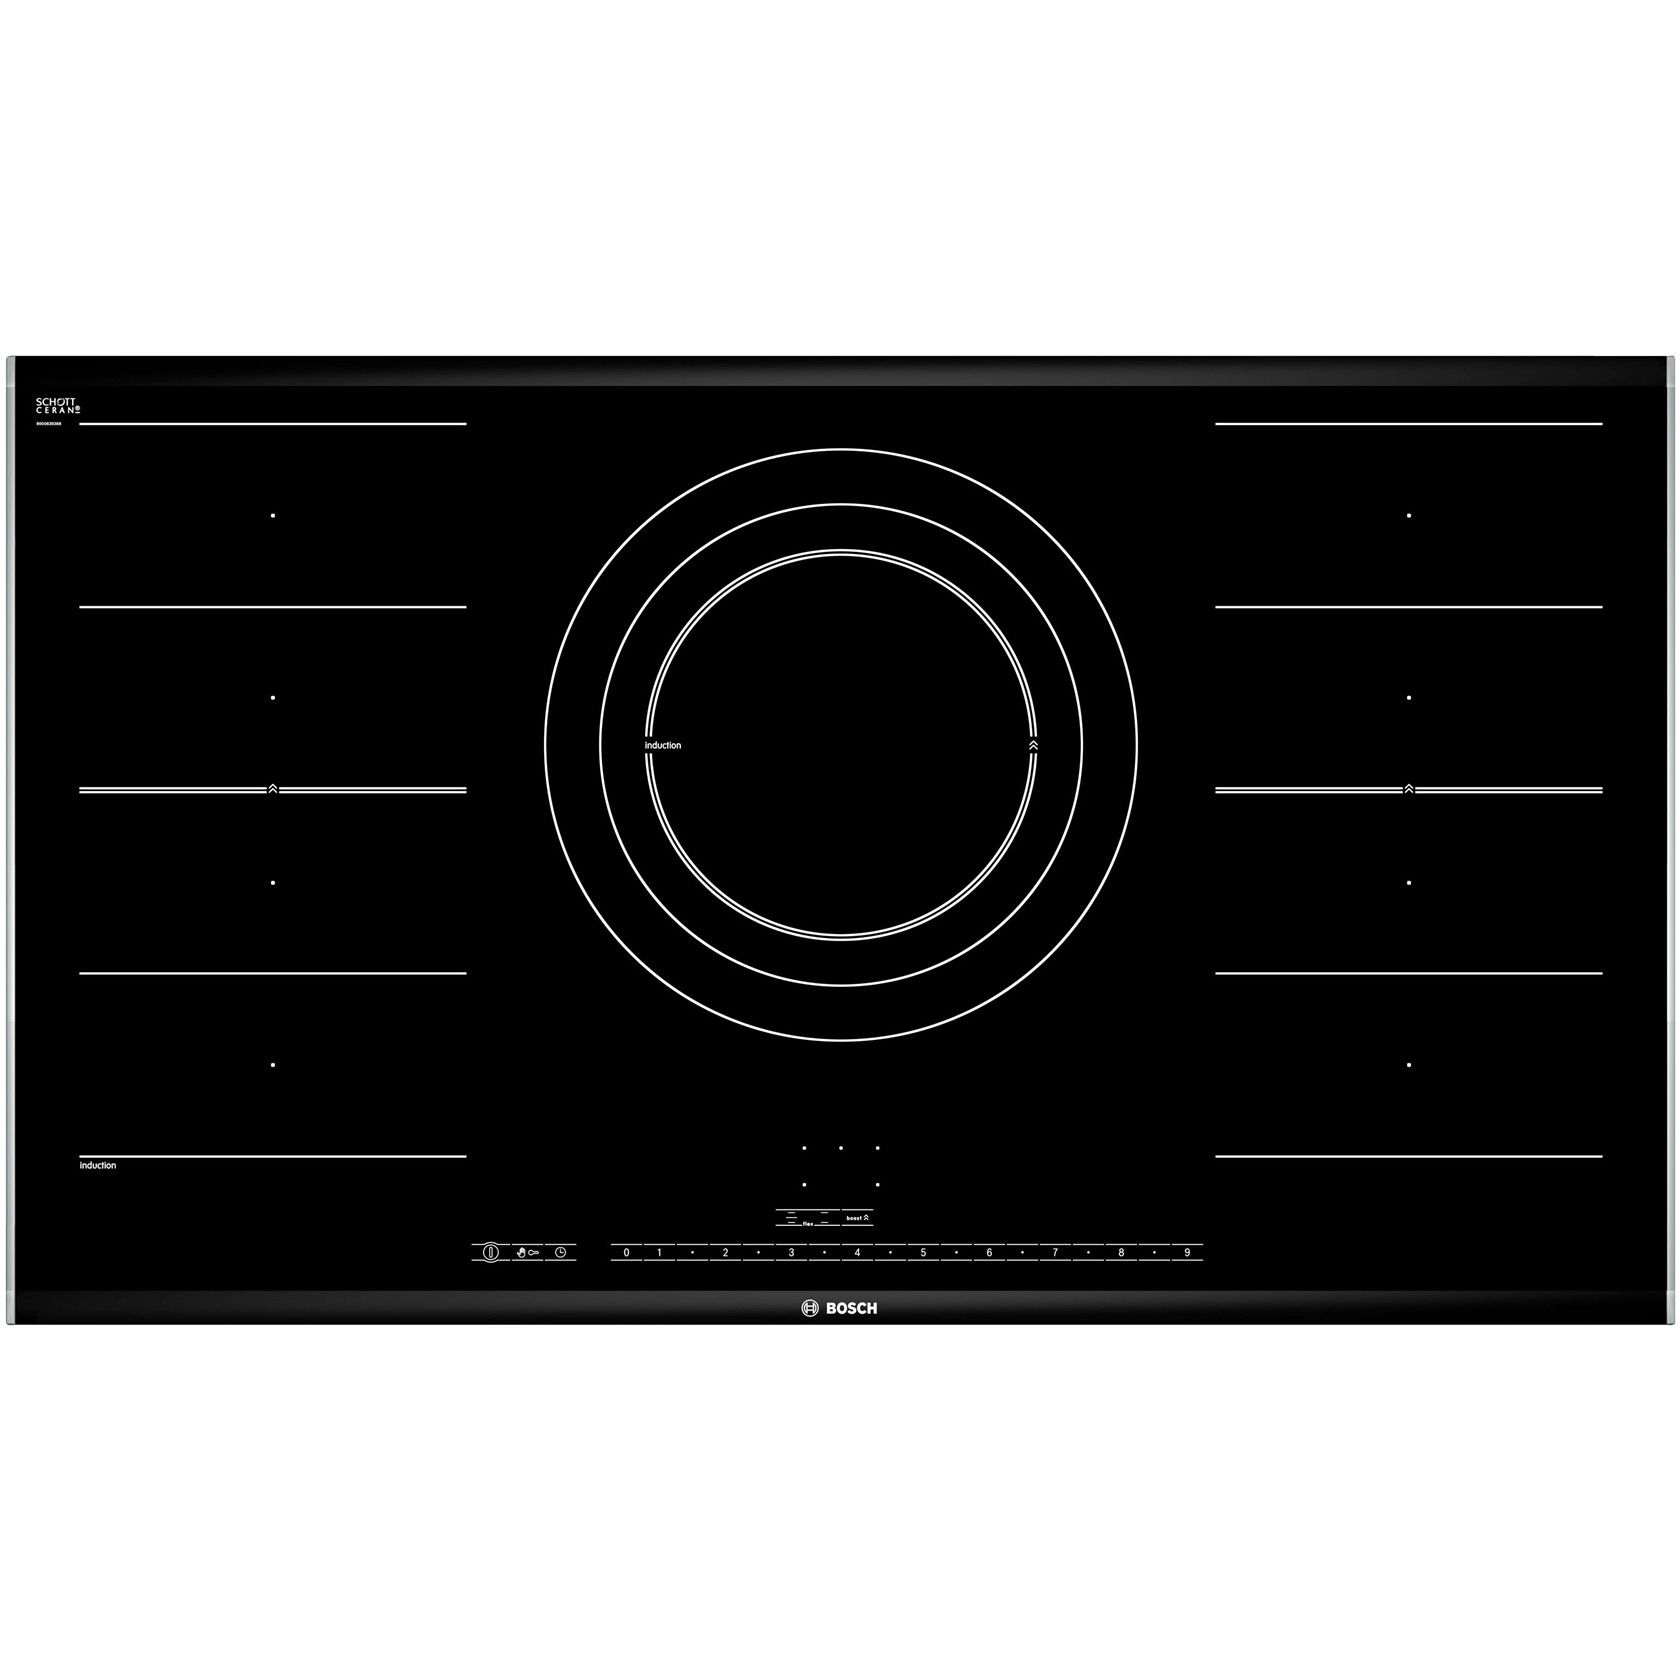 Piano Induzione Neff Flexinduction bosch gets good reviews, but there is not a 800 wide hob